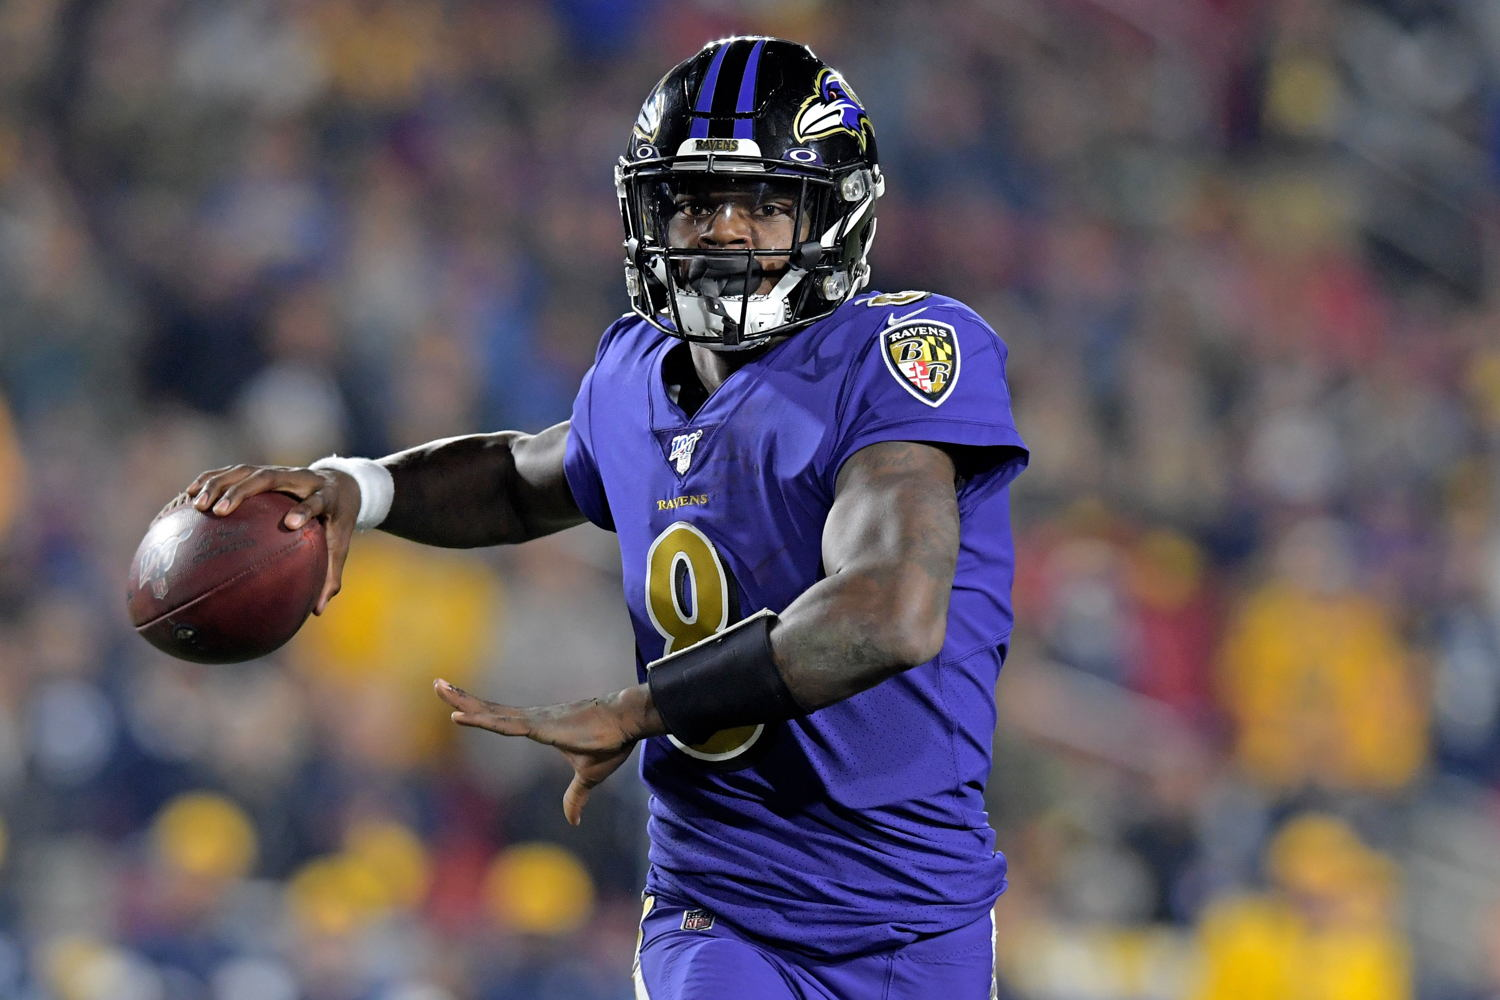 Fantasy Football Rankings: Top 10 Players To Get